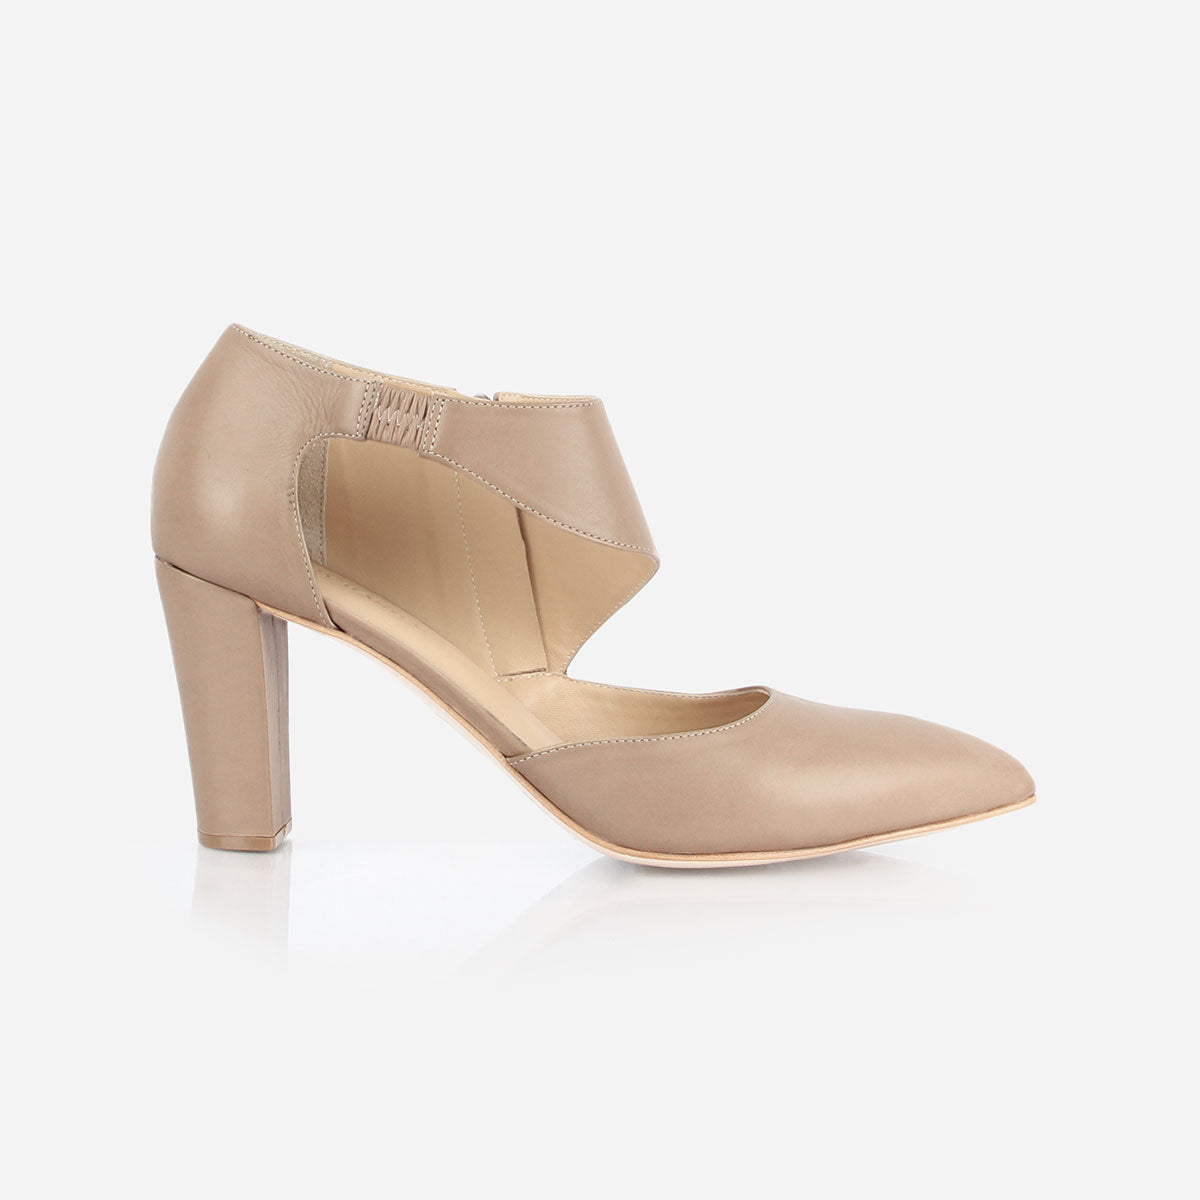 The Meghan Cutout Taupe - Poppy Barley